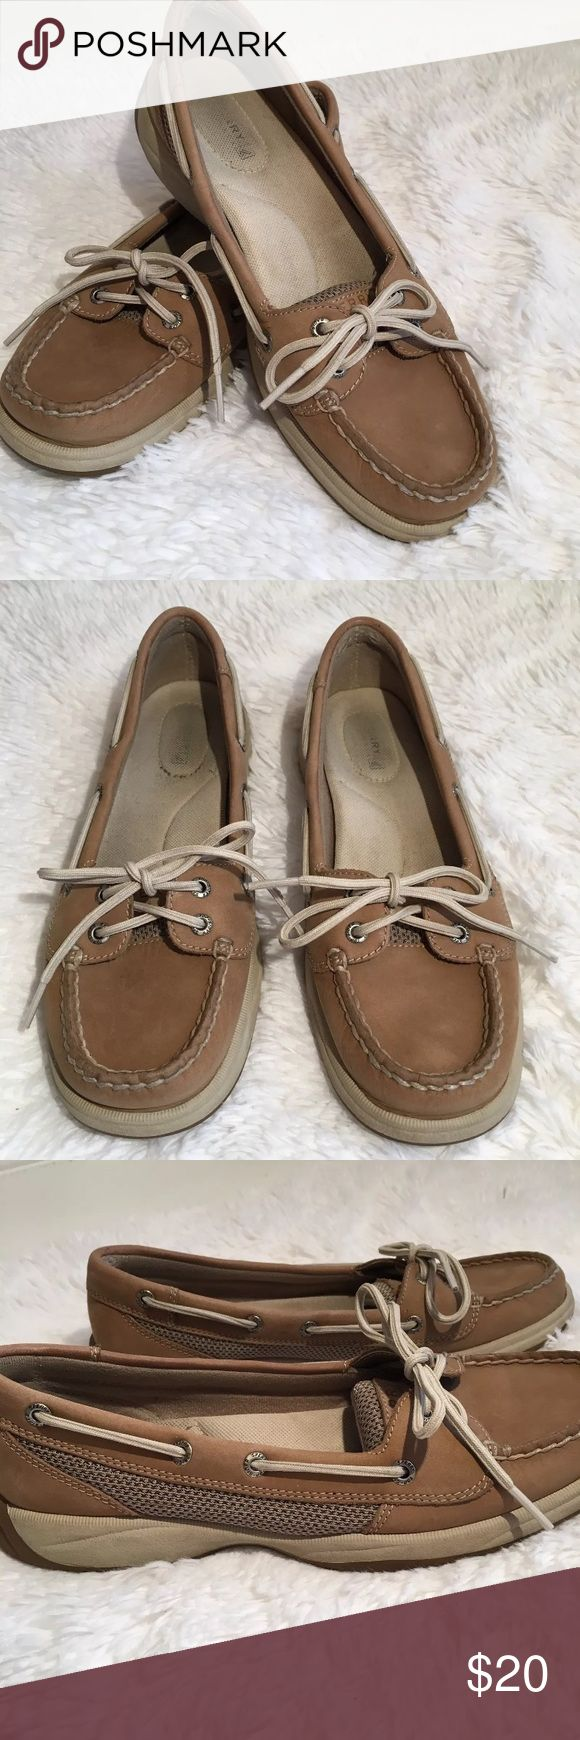 Sperrys Top Siders Boat Shoes Women's Tan 8 Sperry Top Siders Size: 8 Color: Beige Materials:Leather Upper  Condition: Preowned, in good condition, inside soles show some wear Sperry Top-Sider Shoes Flats & Loafers